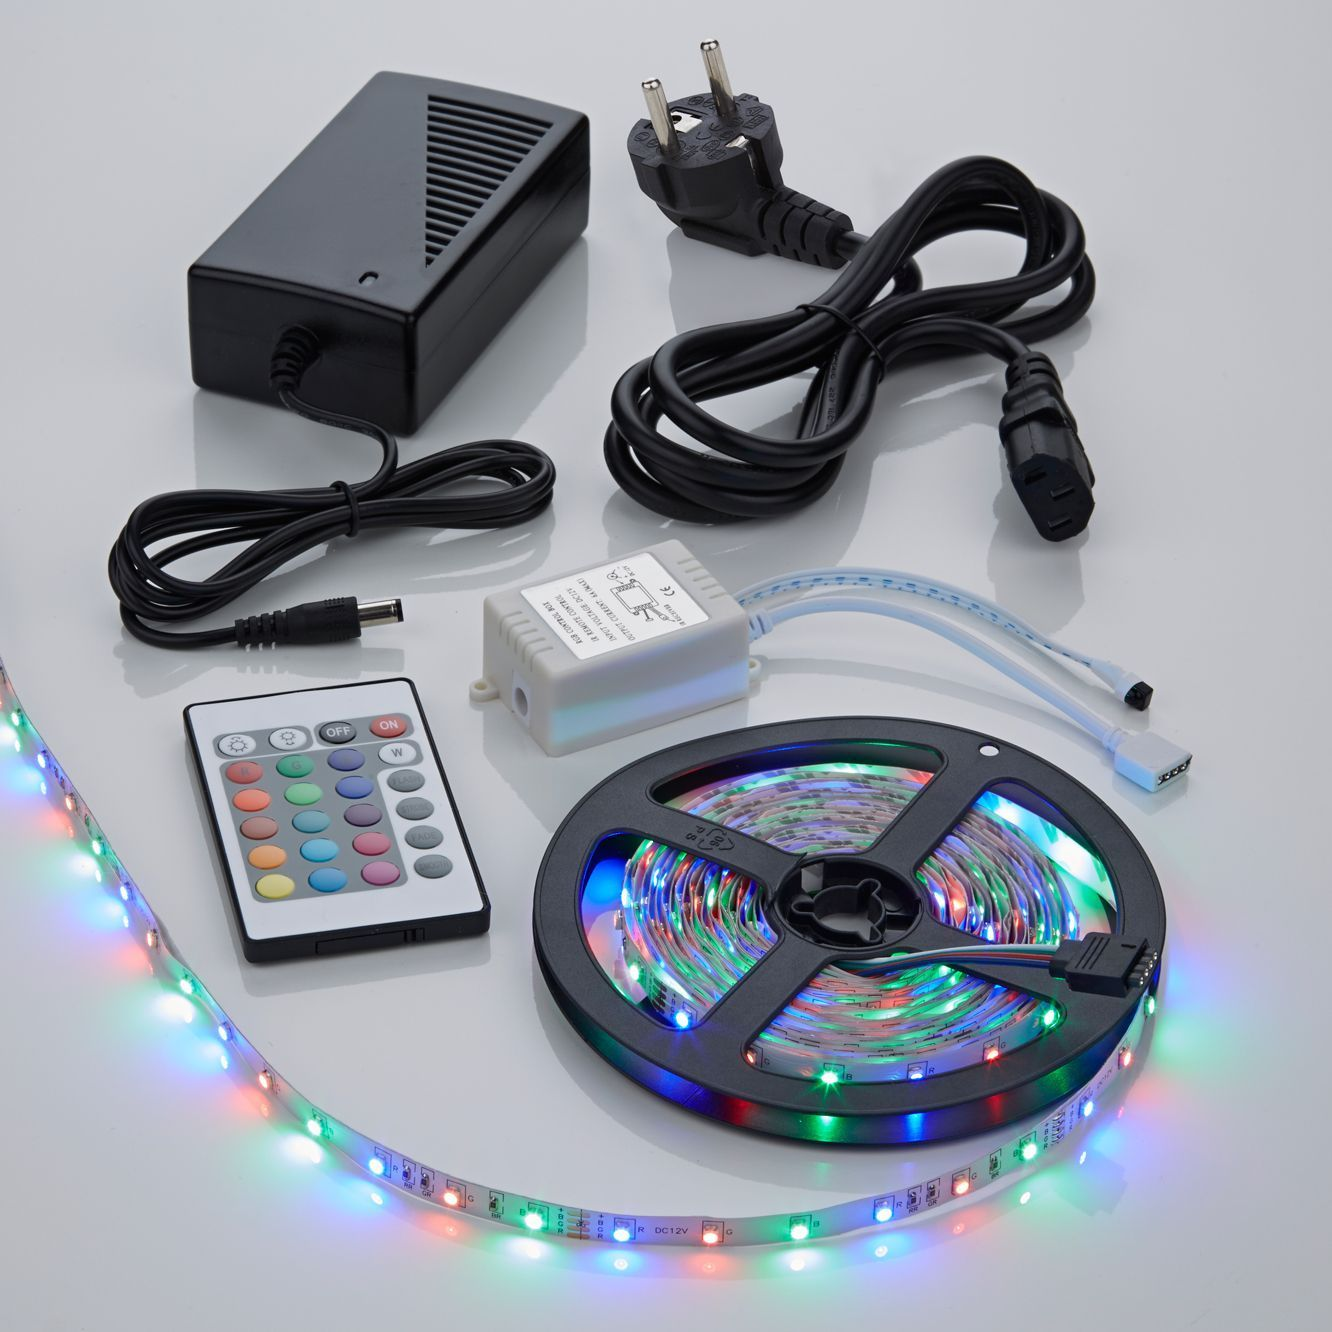 Biard Kit Ruban LED 3528 Blanc & RGB Brillant 5m